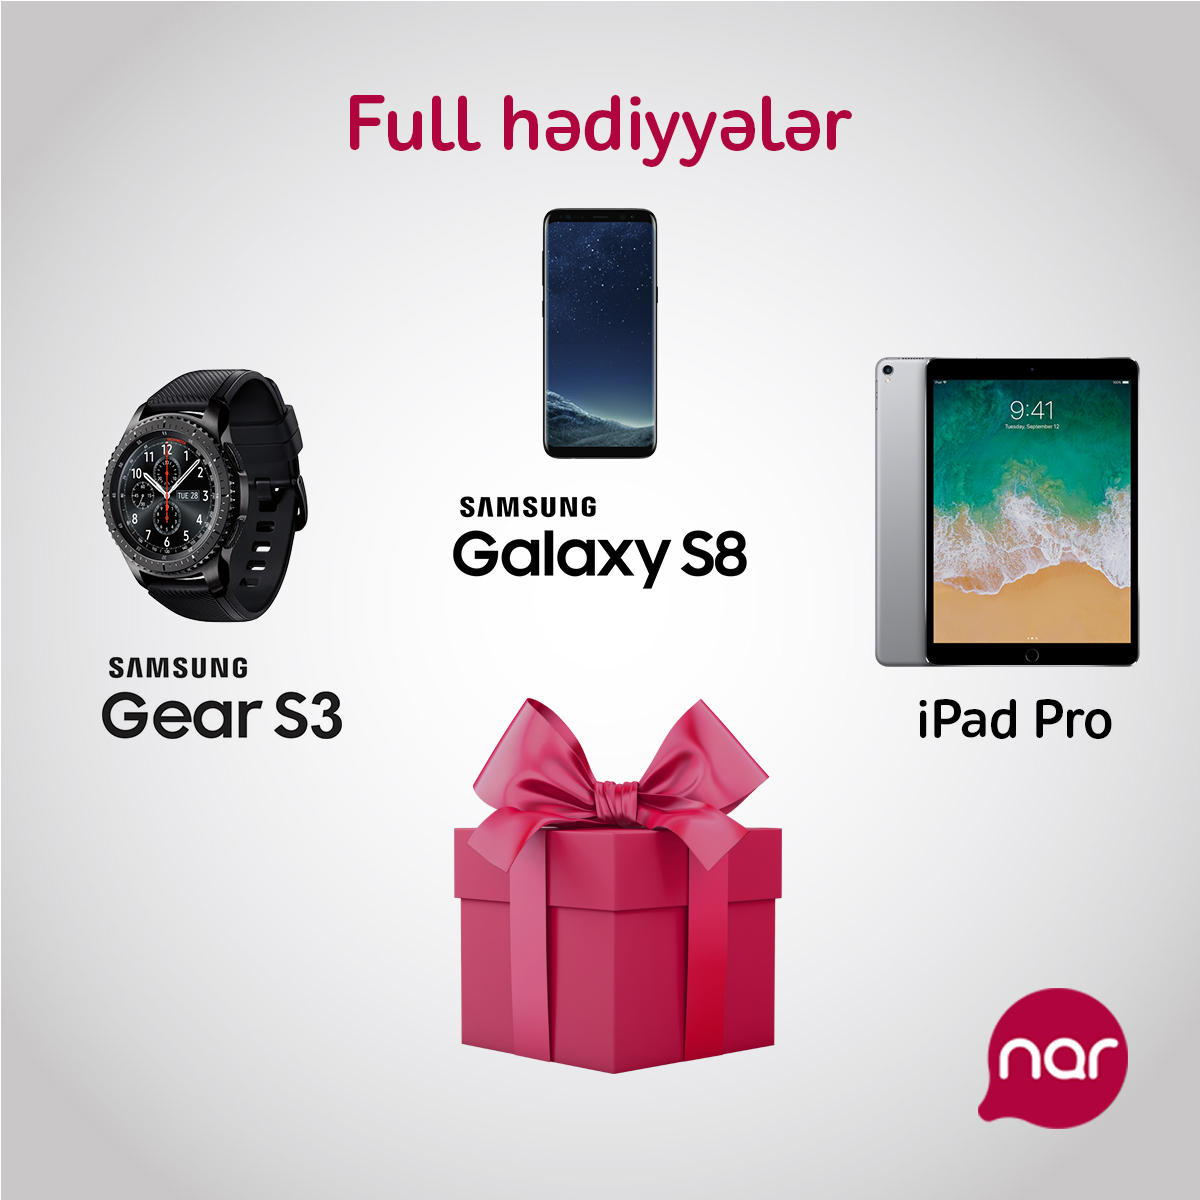 Join to Full package and win Samsung Galaxy S8 or iPad Pro from Nar! (PHOTO)